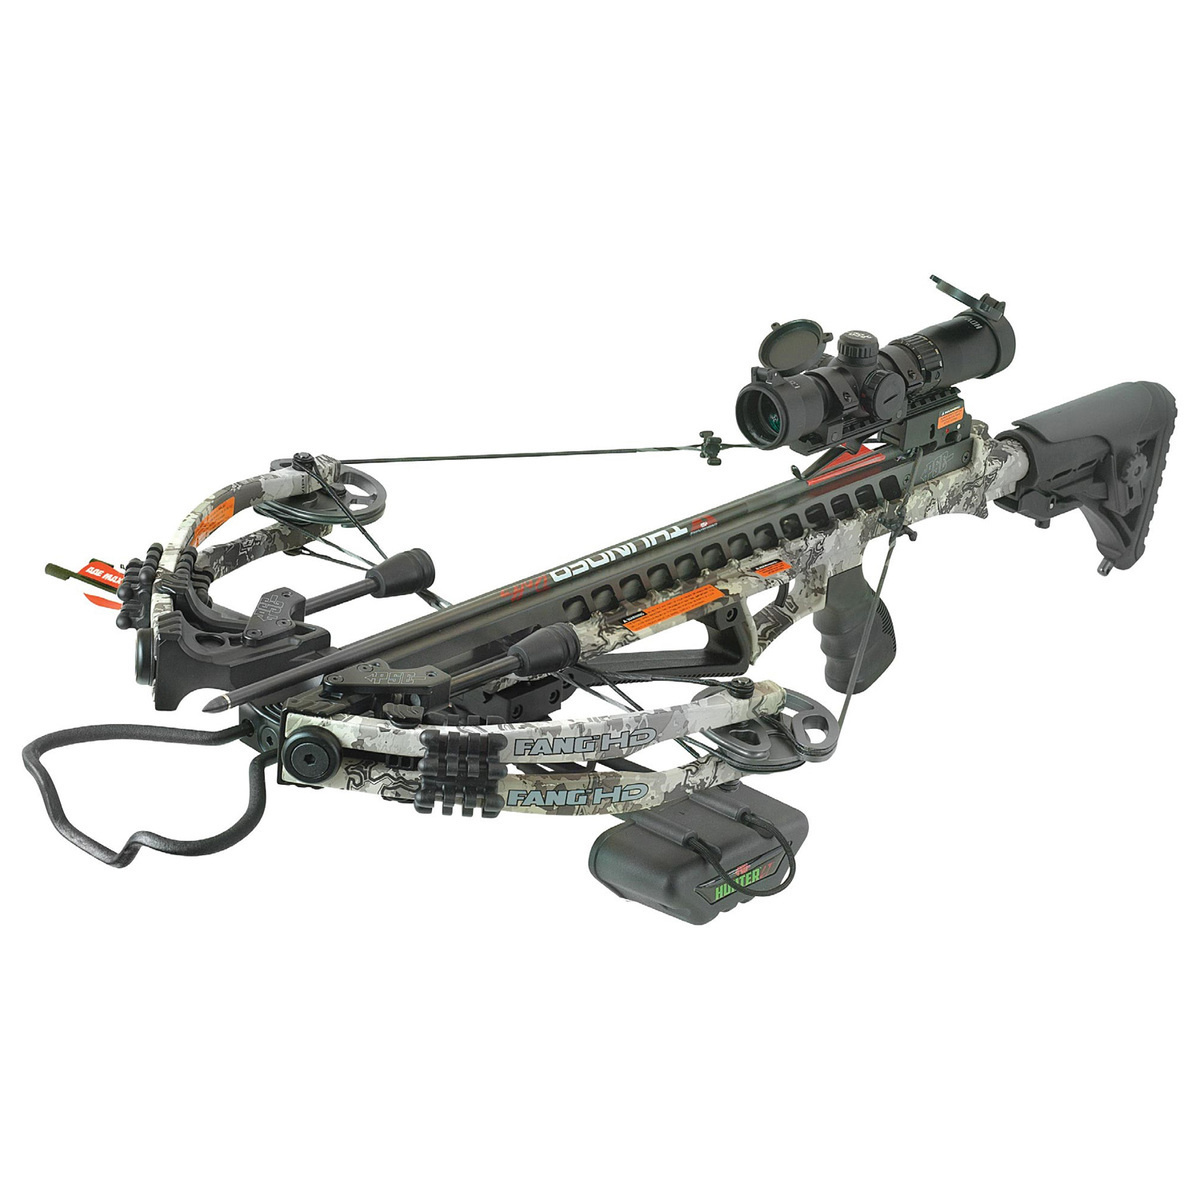 PSE Fang HD True Timber Viper Western Camo Crossbow Package